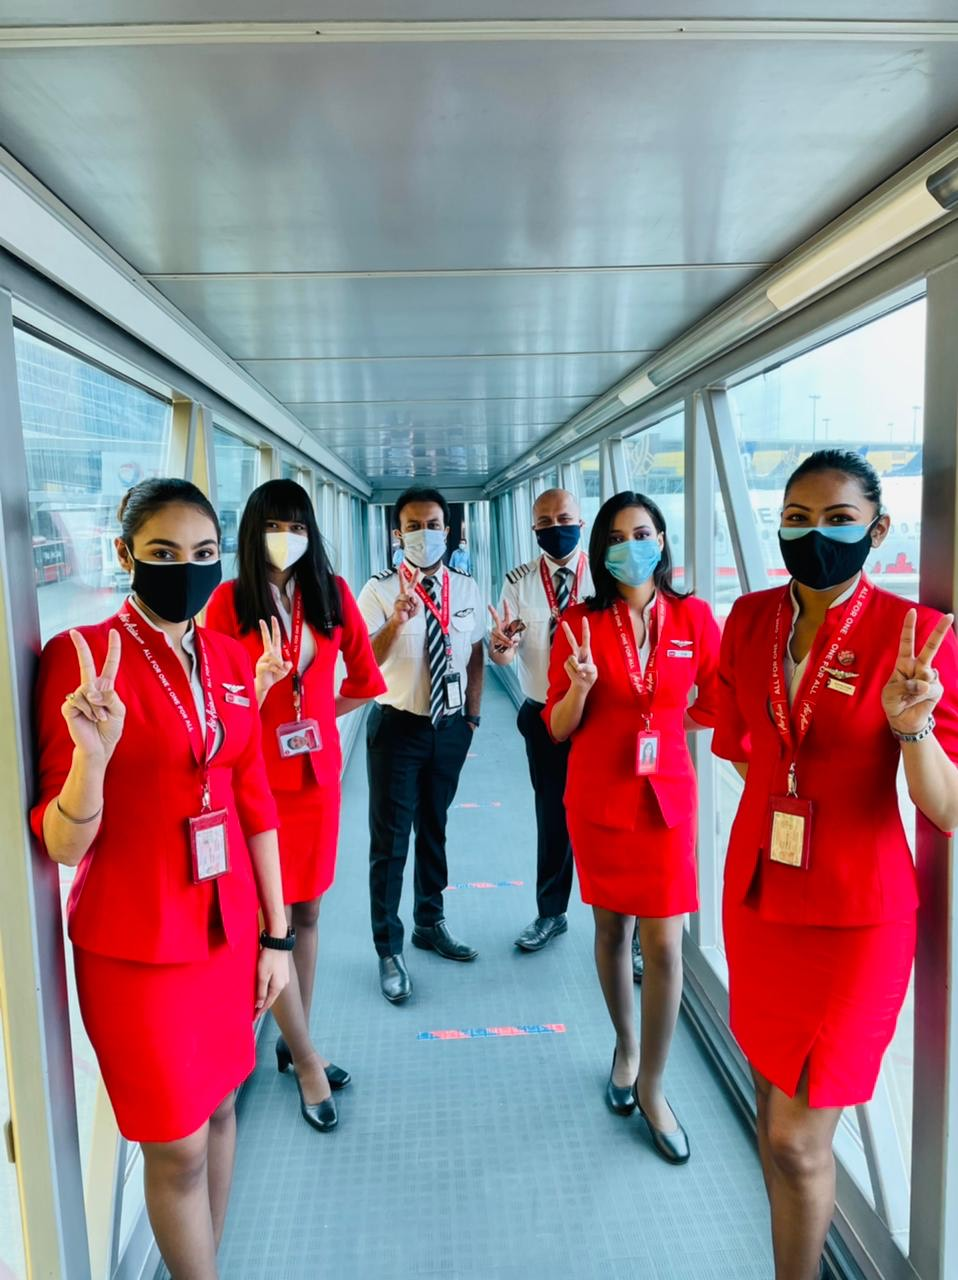 AirAsiaIndia operates with fully vaccinated crew on 9 flights across multiple metro sectors